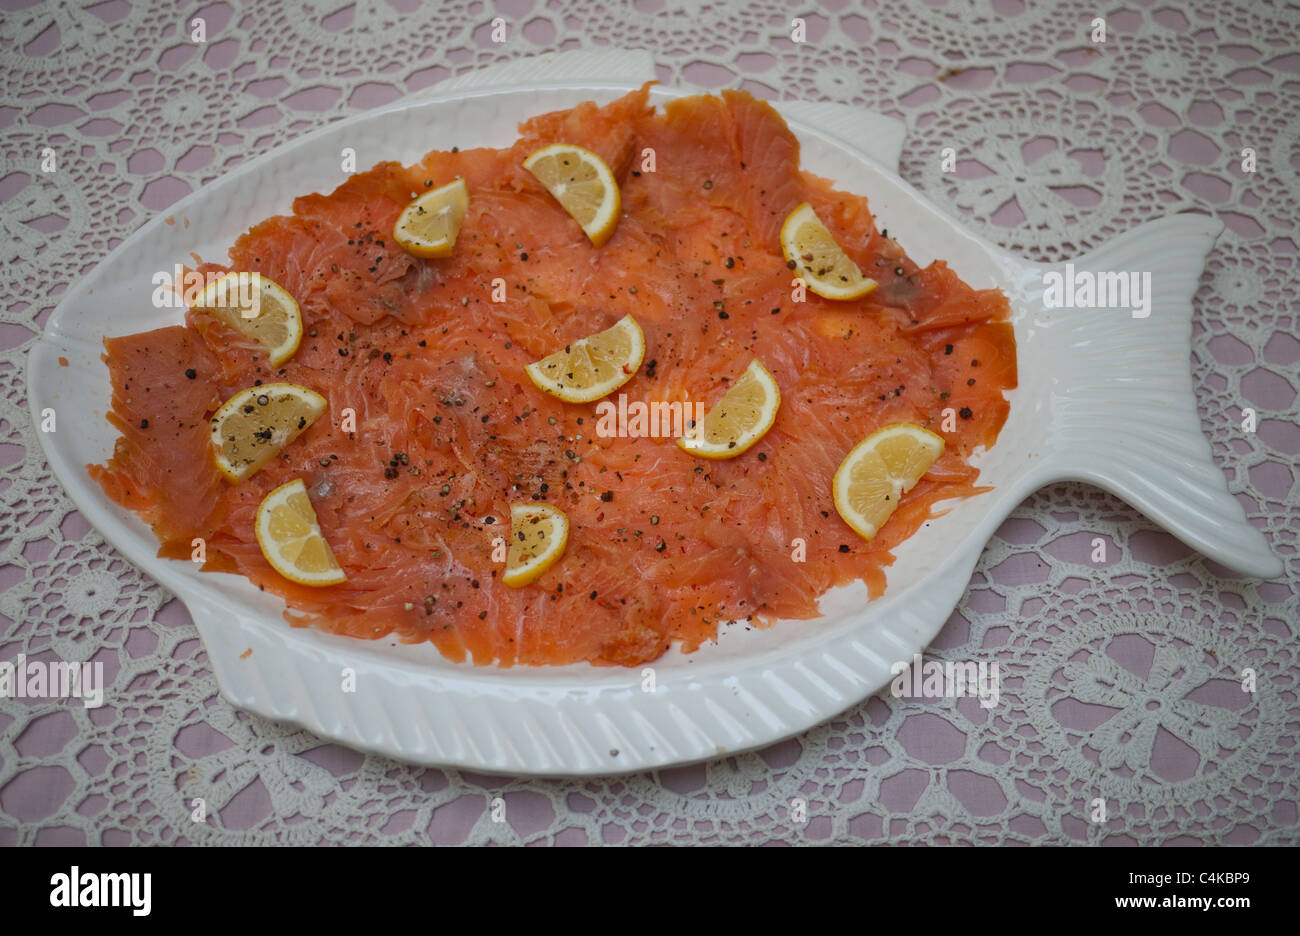 White Fish Shaped Platter Of Smoked Salmon With Lemon On Table With Table  Cloth